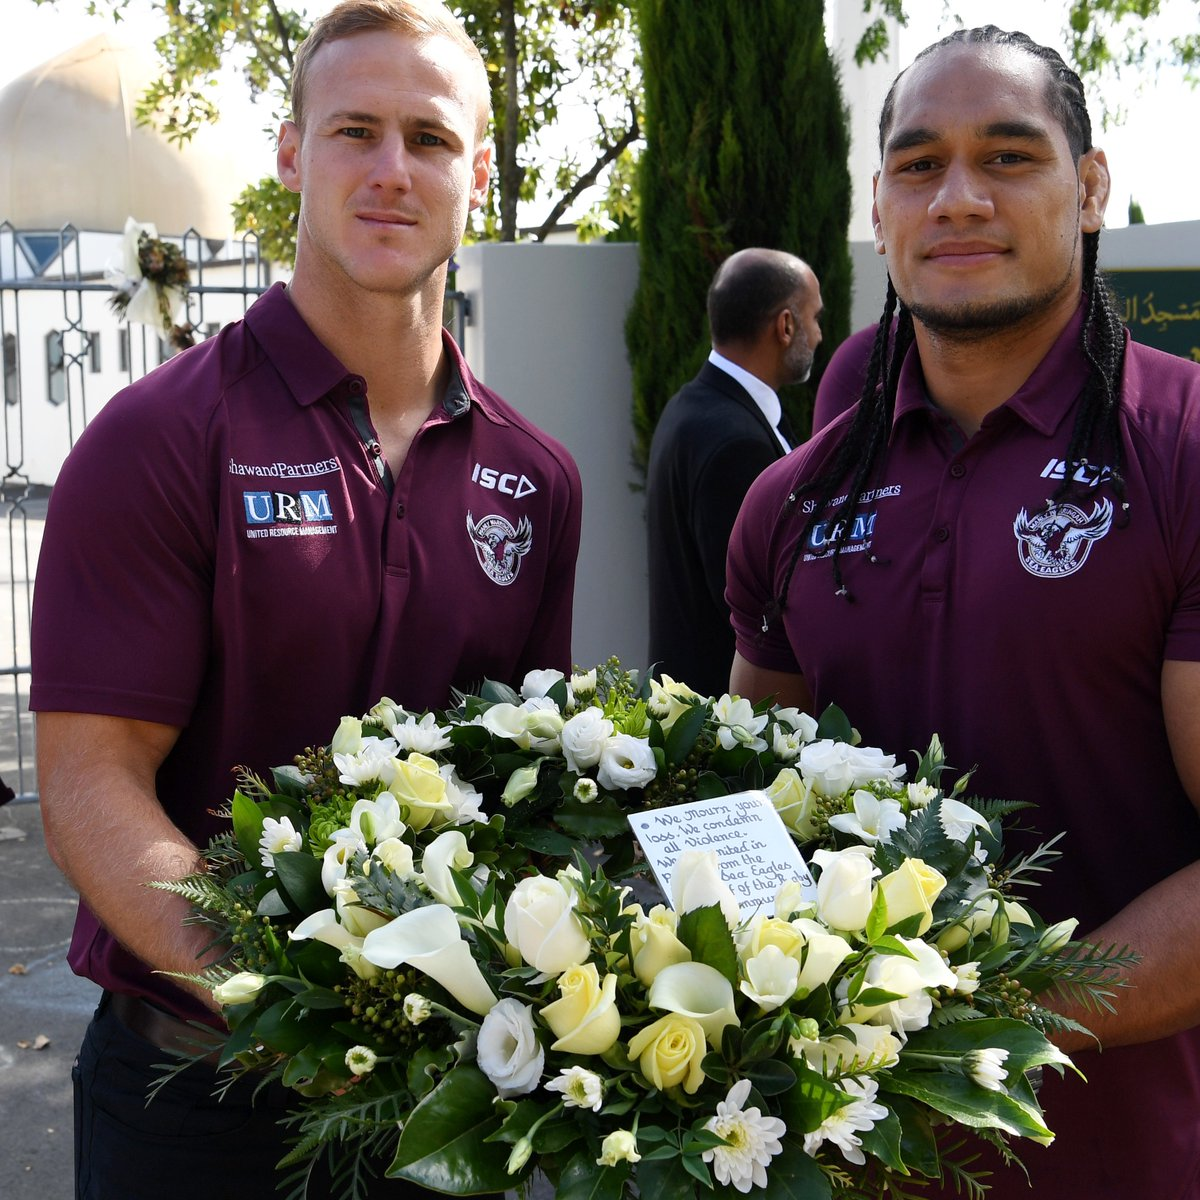 A year on  We reflect on this beautiful video by @katiebrownaus and @NRLcom of the time our Club and the @NZWarriors, supported the Christchurch community - https://seaeagles.com.au/news/2020/03/29/sea-eagles-and-warriors-help-christchurch-heal/…  #ManlyForever #TheyAreUs #Christchurchpic.twitter.com/ZkTmFf3byg